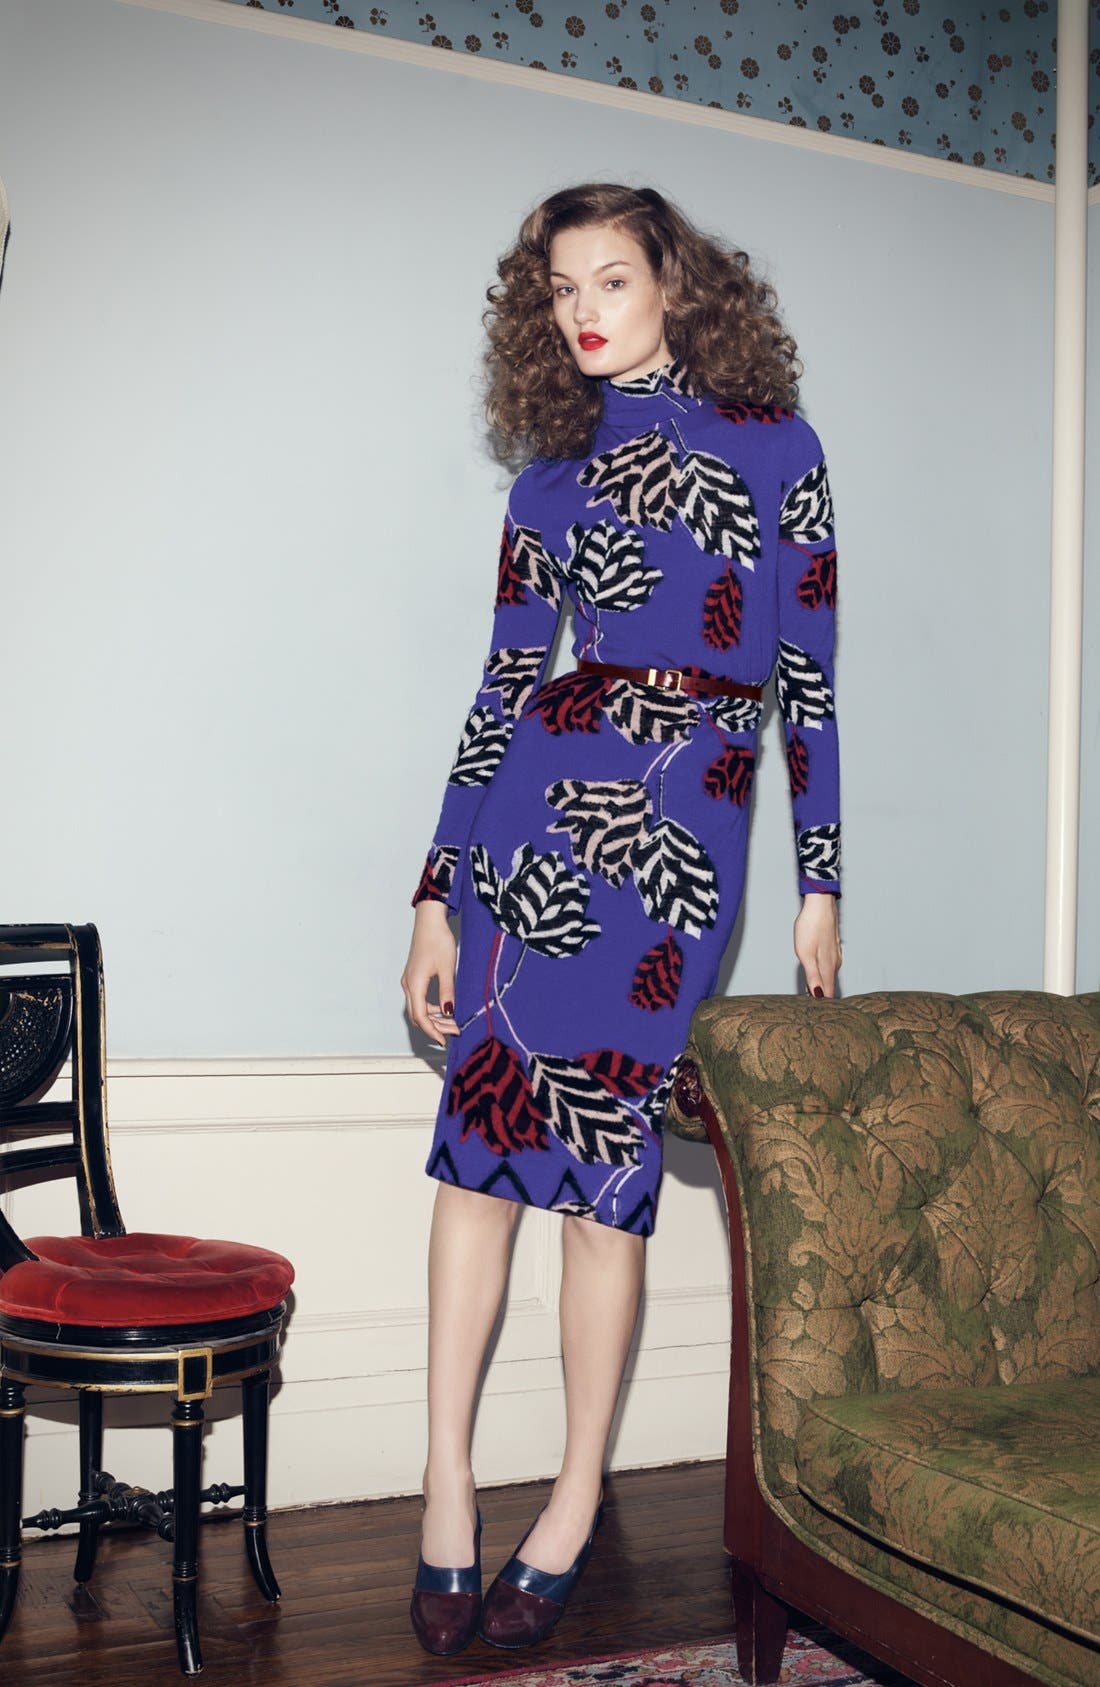 Main Image - MARC BY MARC JACOBS Sweater Dress & Accessories